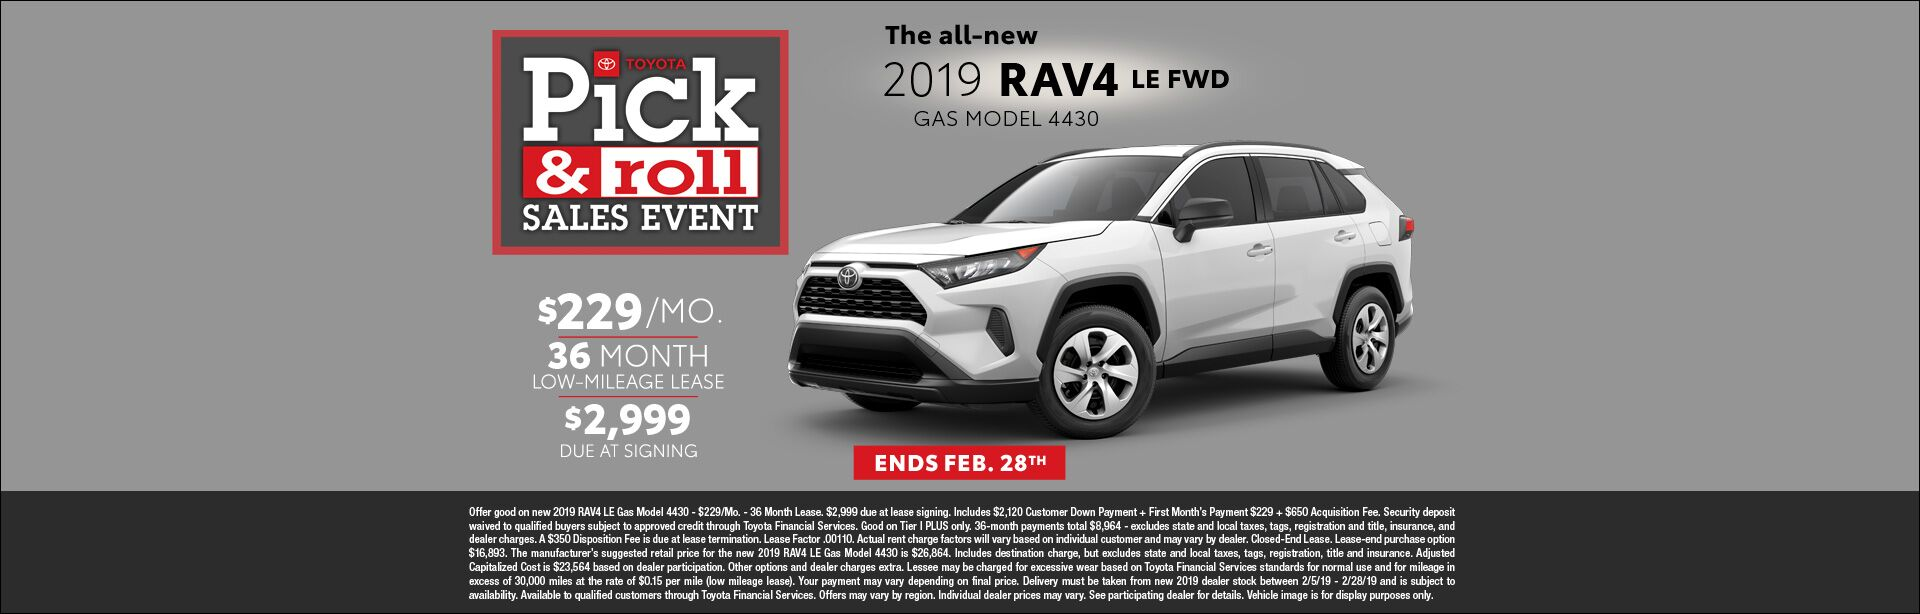 Pick and Roll Sales Event Rav4 Lease Feb 2019